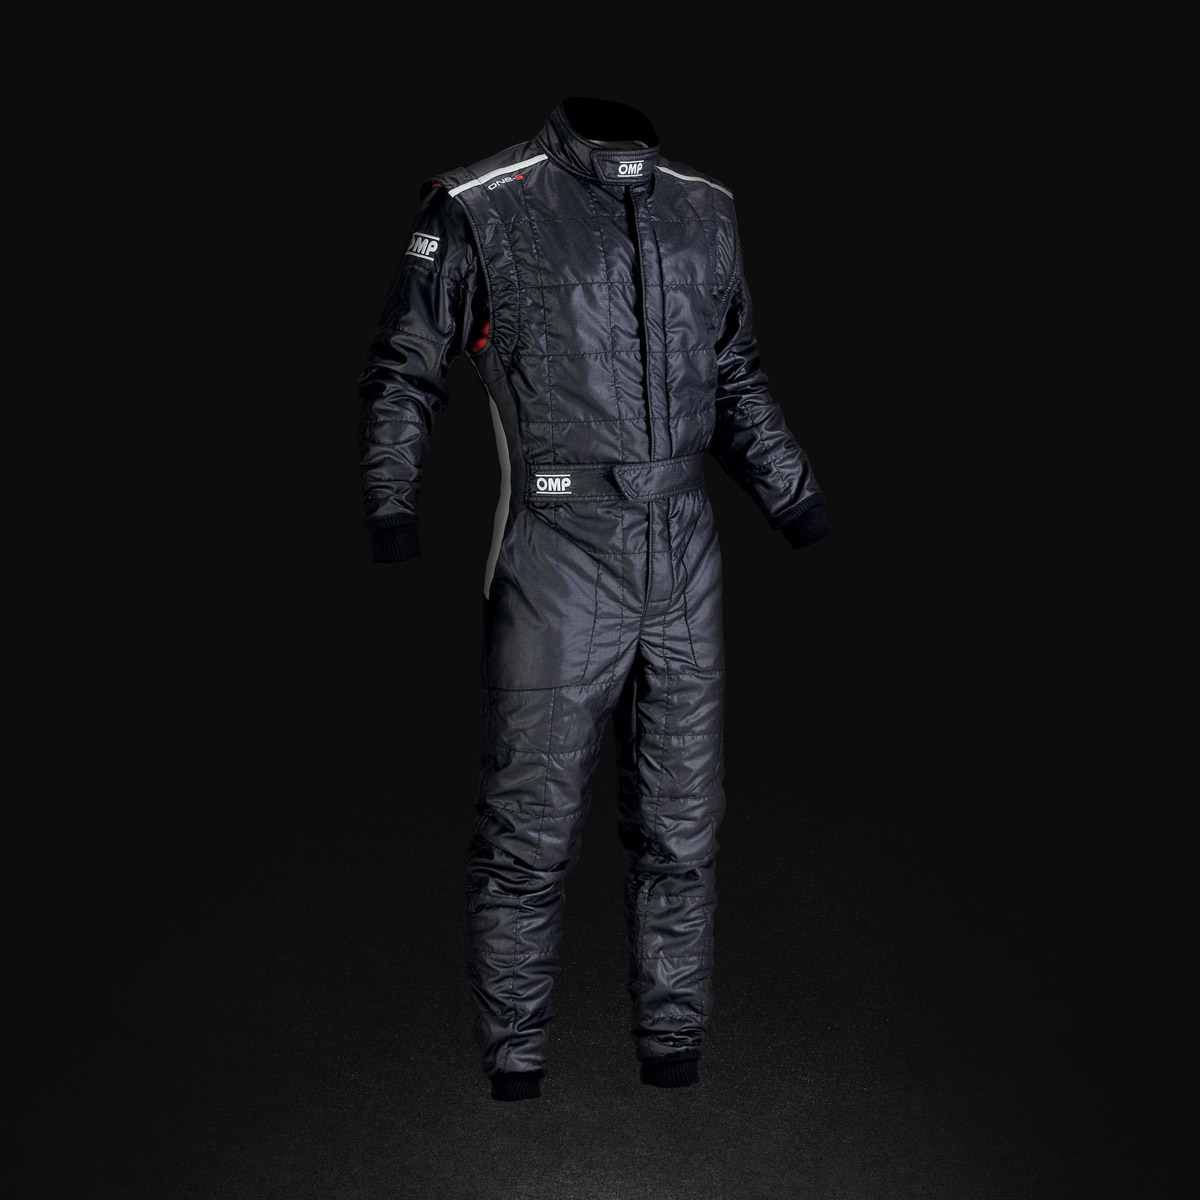 New OMP One S Suit